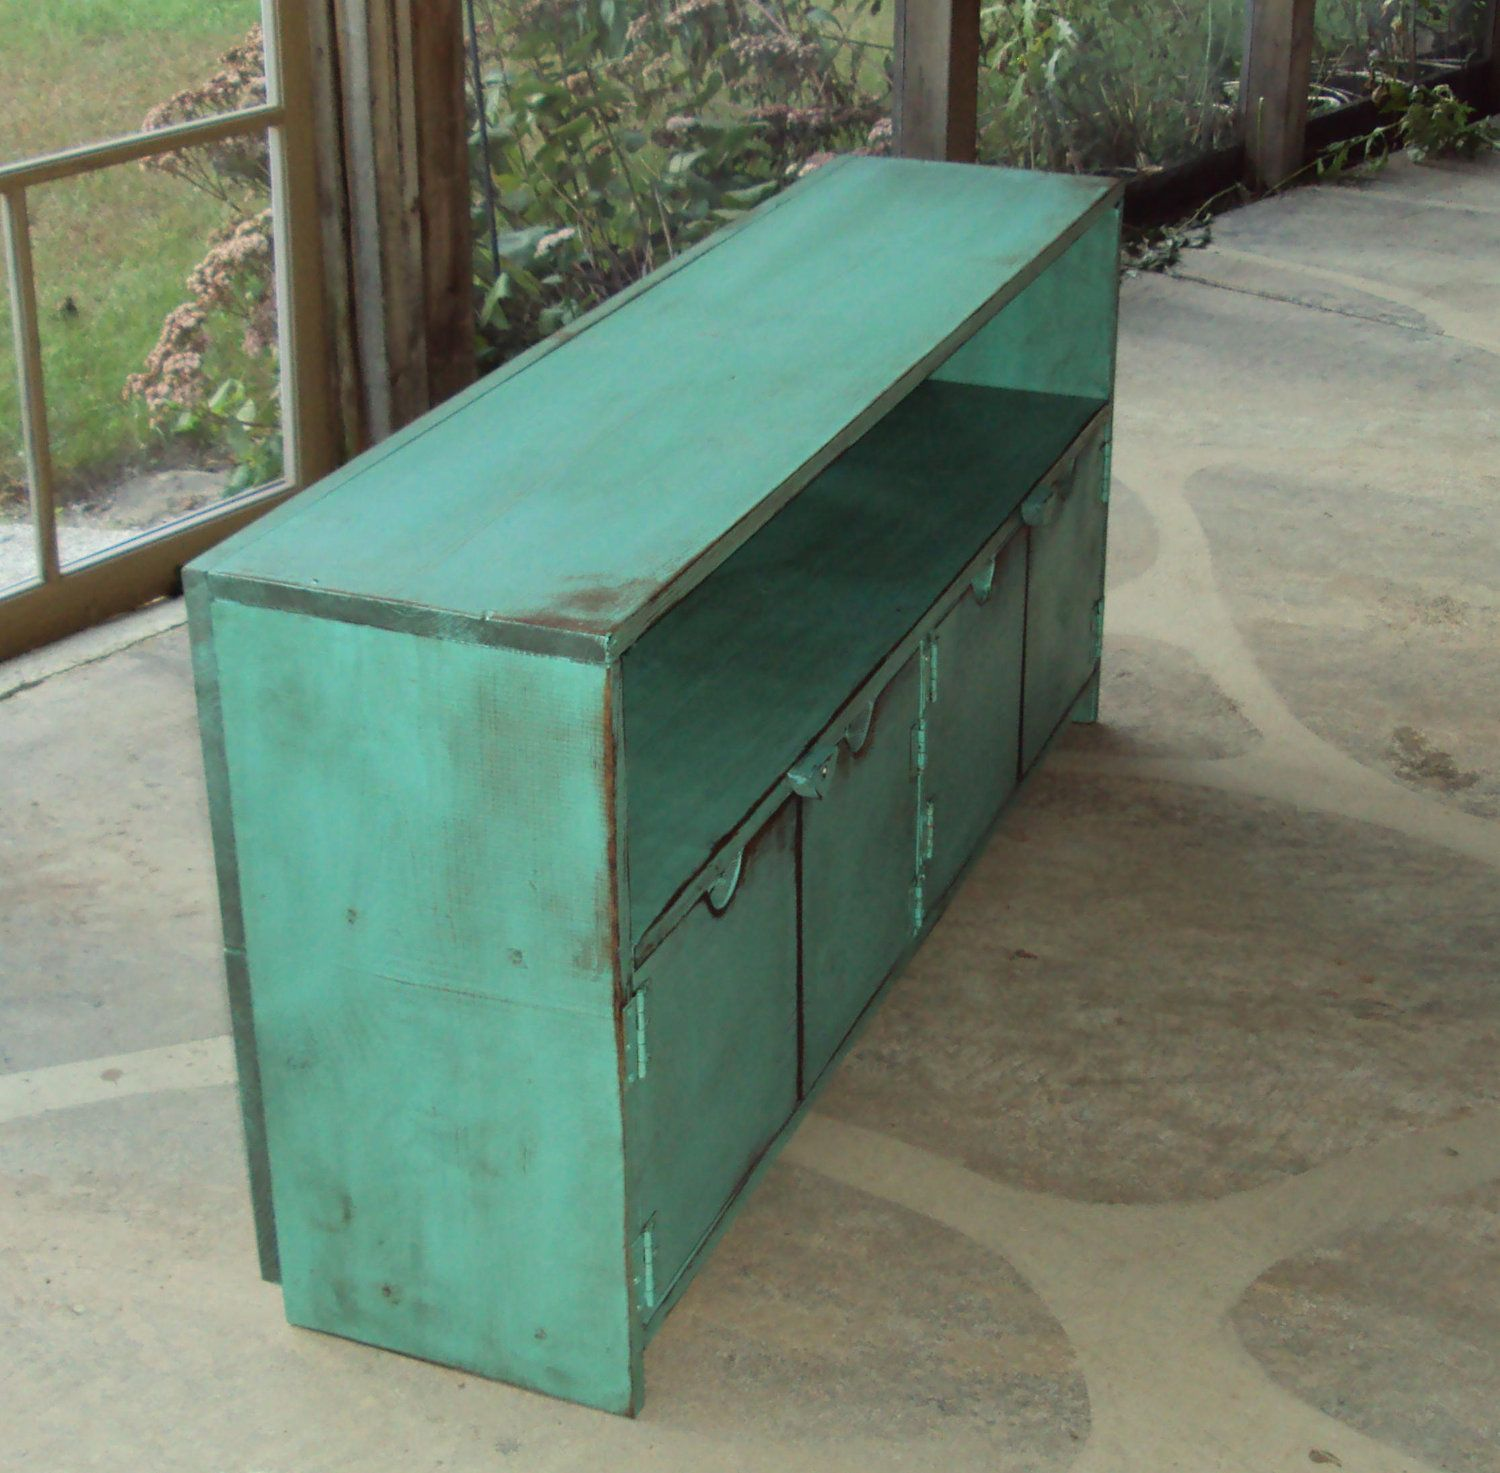 Reclaimed TV Cabinet Storage Bench 48 Wide Shabby By USAcreations, $350.00